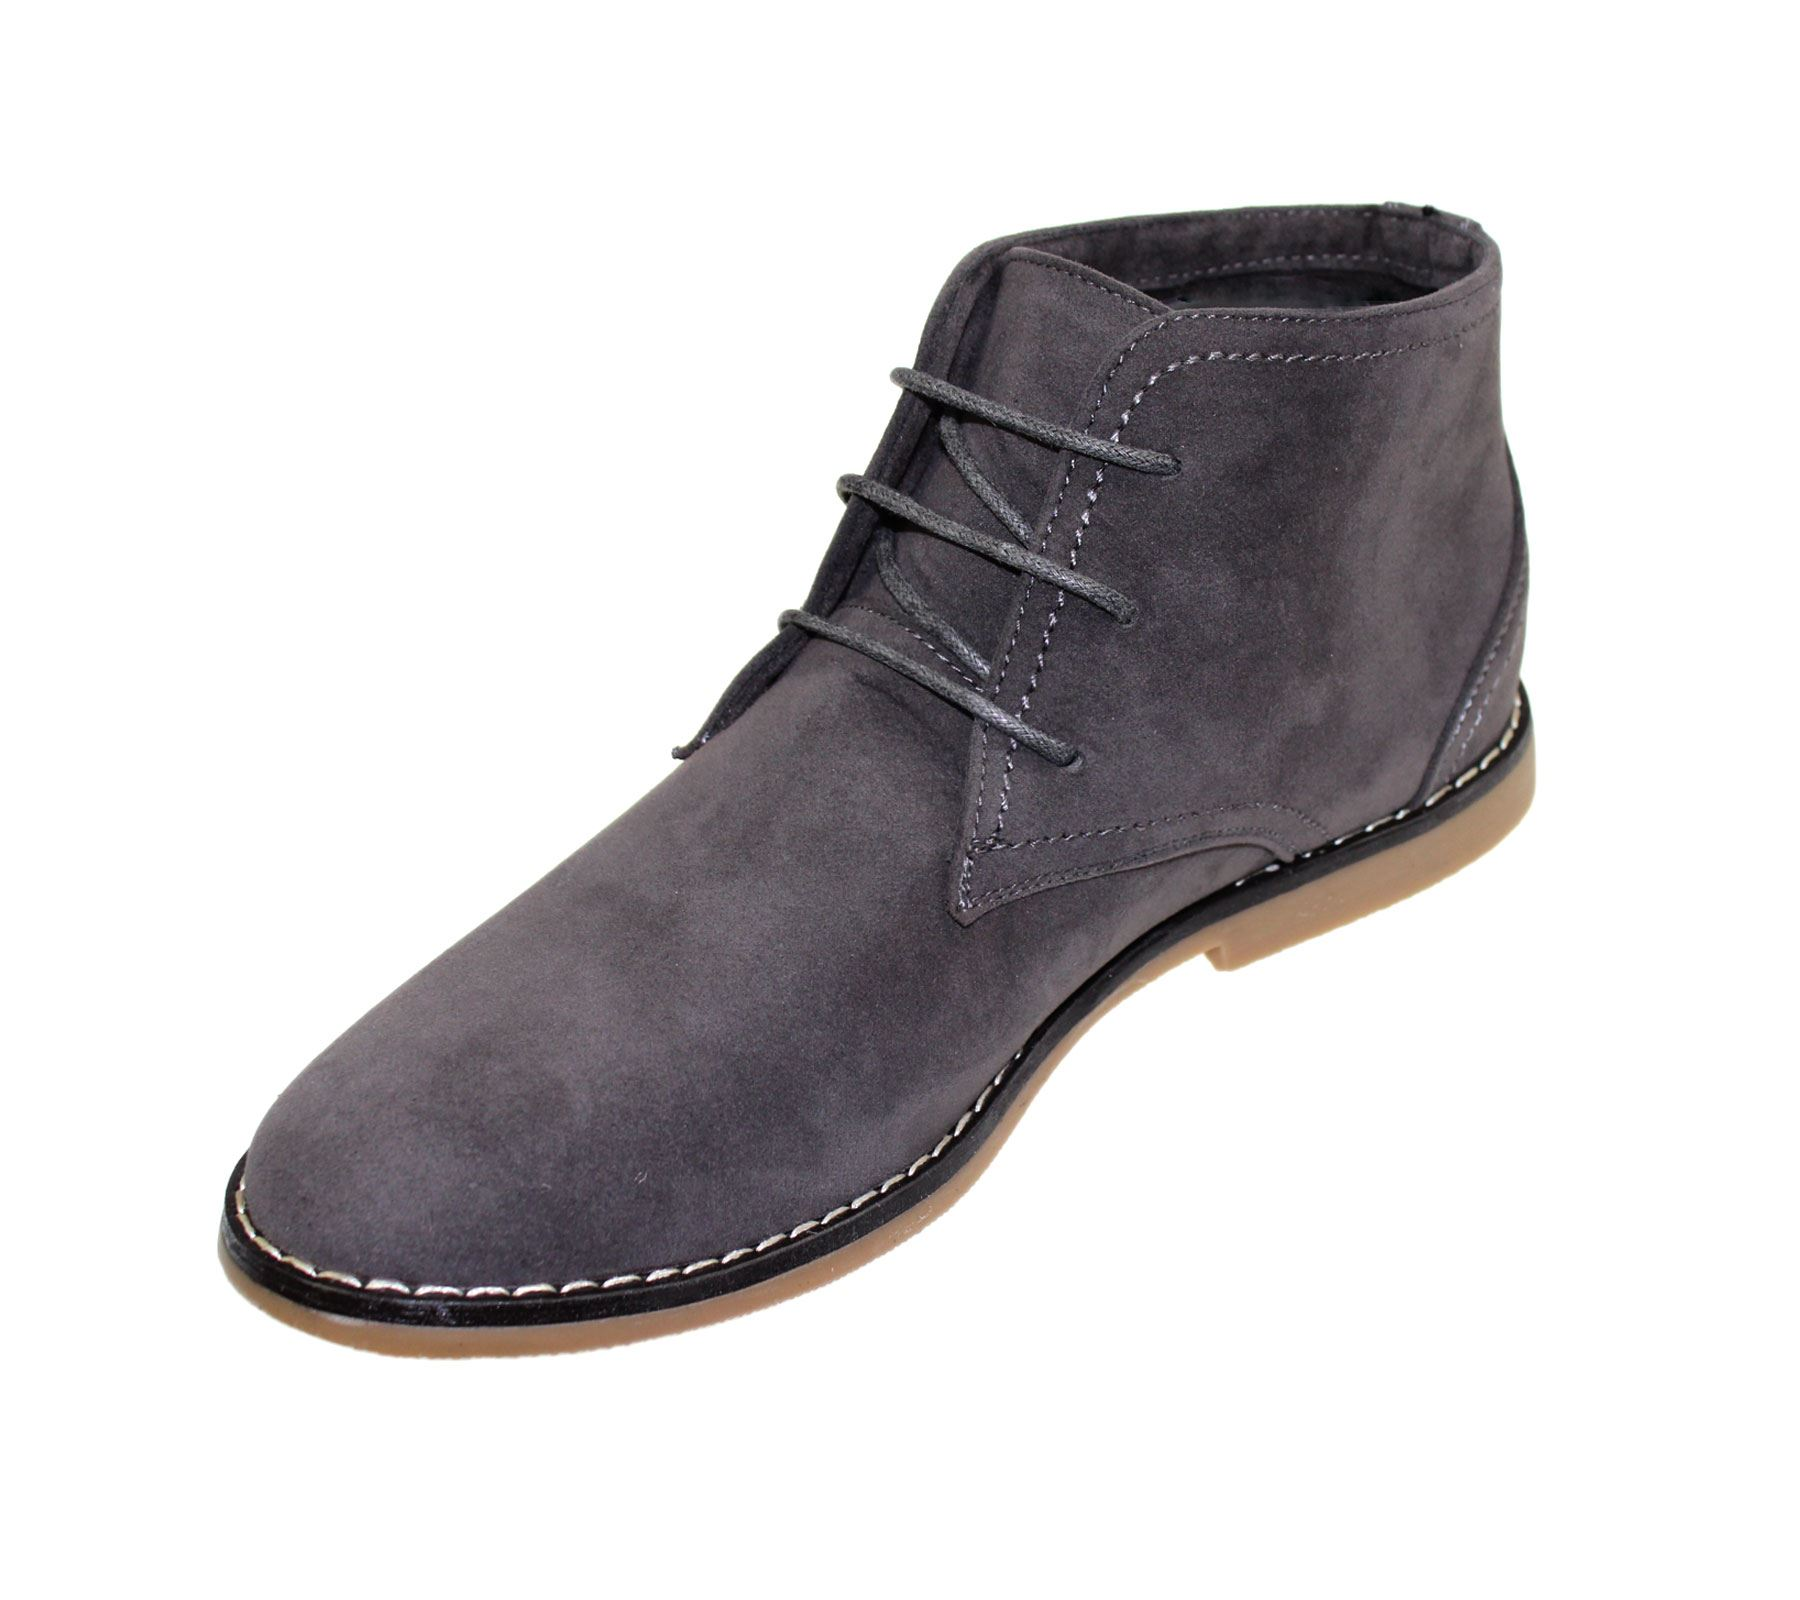 Up Boots Synthetic Lace Casual Desert Ankle Winter Suede Mens xTWnwOO